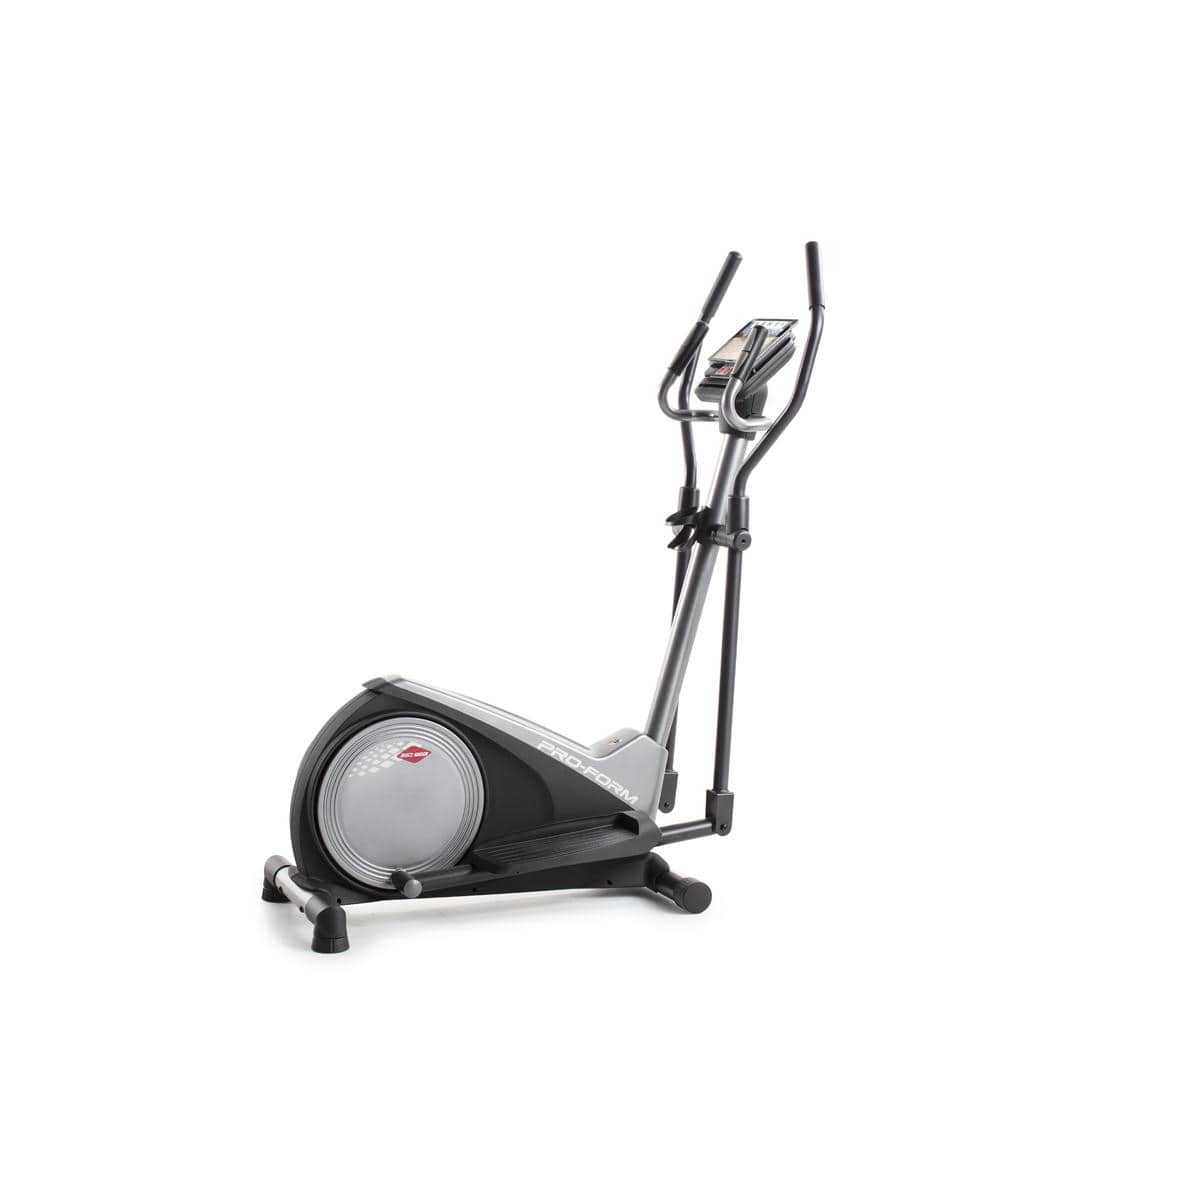 ProForm 295 CSE ELLIPTICAL @ Sears Hometown Store w/ Free Delivery for In-Store Pickup $199.88